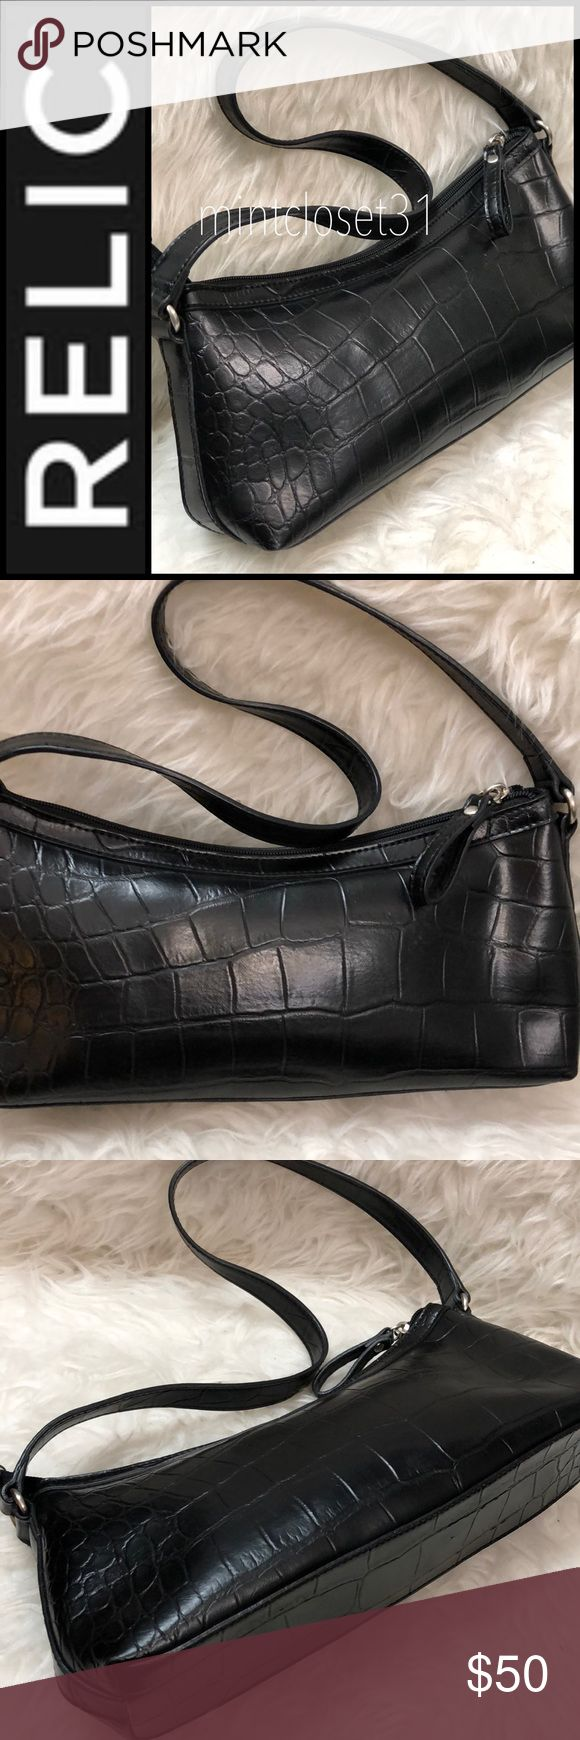 Relic Shoulder Bag Relic Signature Bag in Beautiful Croc Style Pattern! Handcrafted Made with Finest Material with Shoulder Strap That Dropd about 10 Inches! Silver Tone Hardware!  Top Zipper Opens To Fully Lined Interior with Zip and Slip Pockets! Timeless Design and Excellent Quality! Medium Sized Bag in used Good Condition! Relic Bags Shoulder Bags